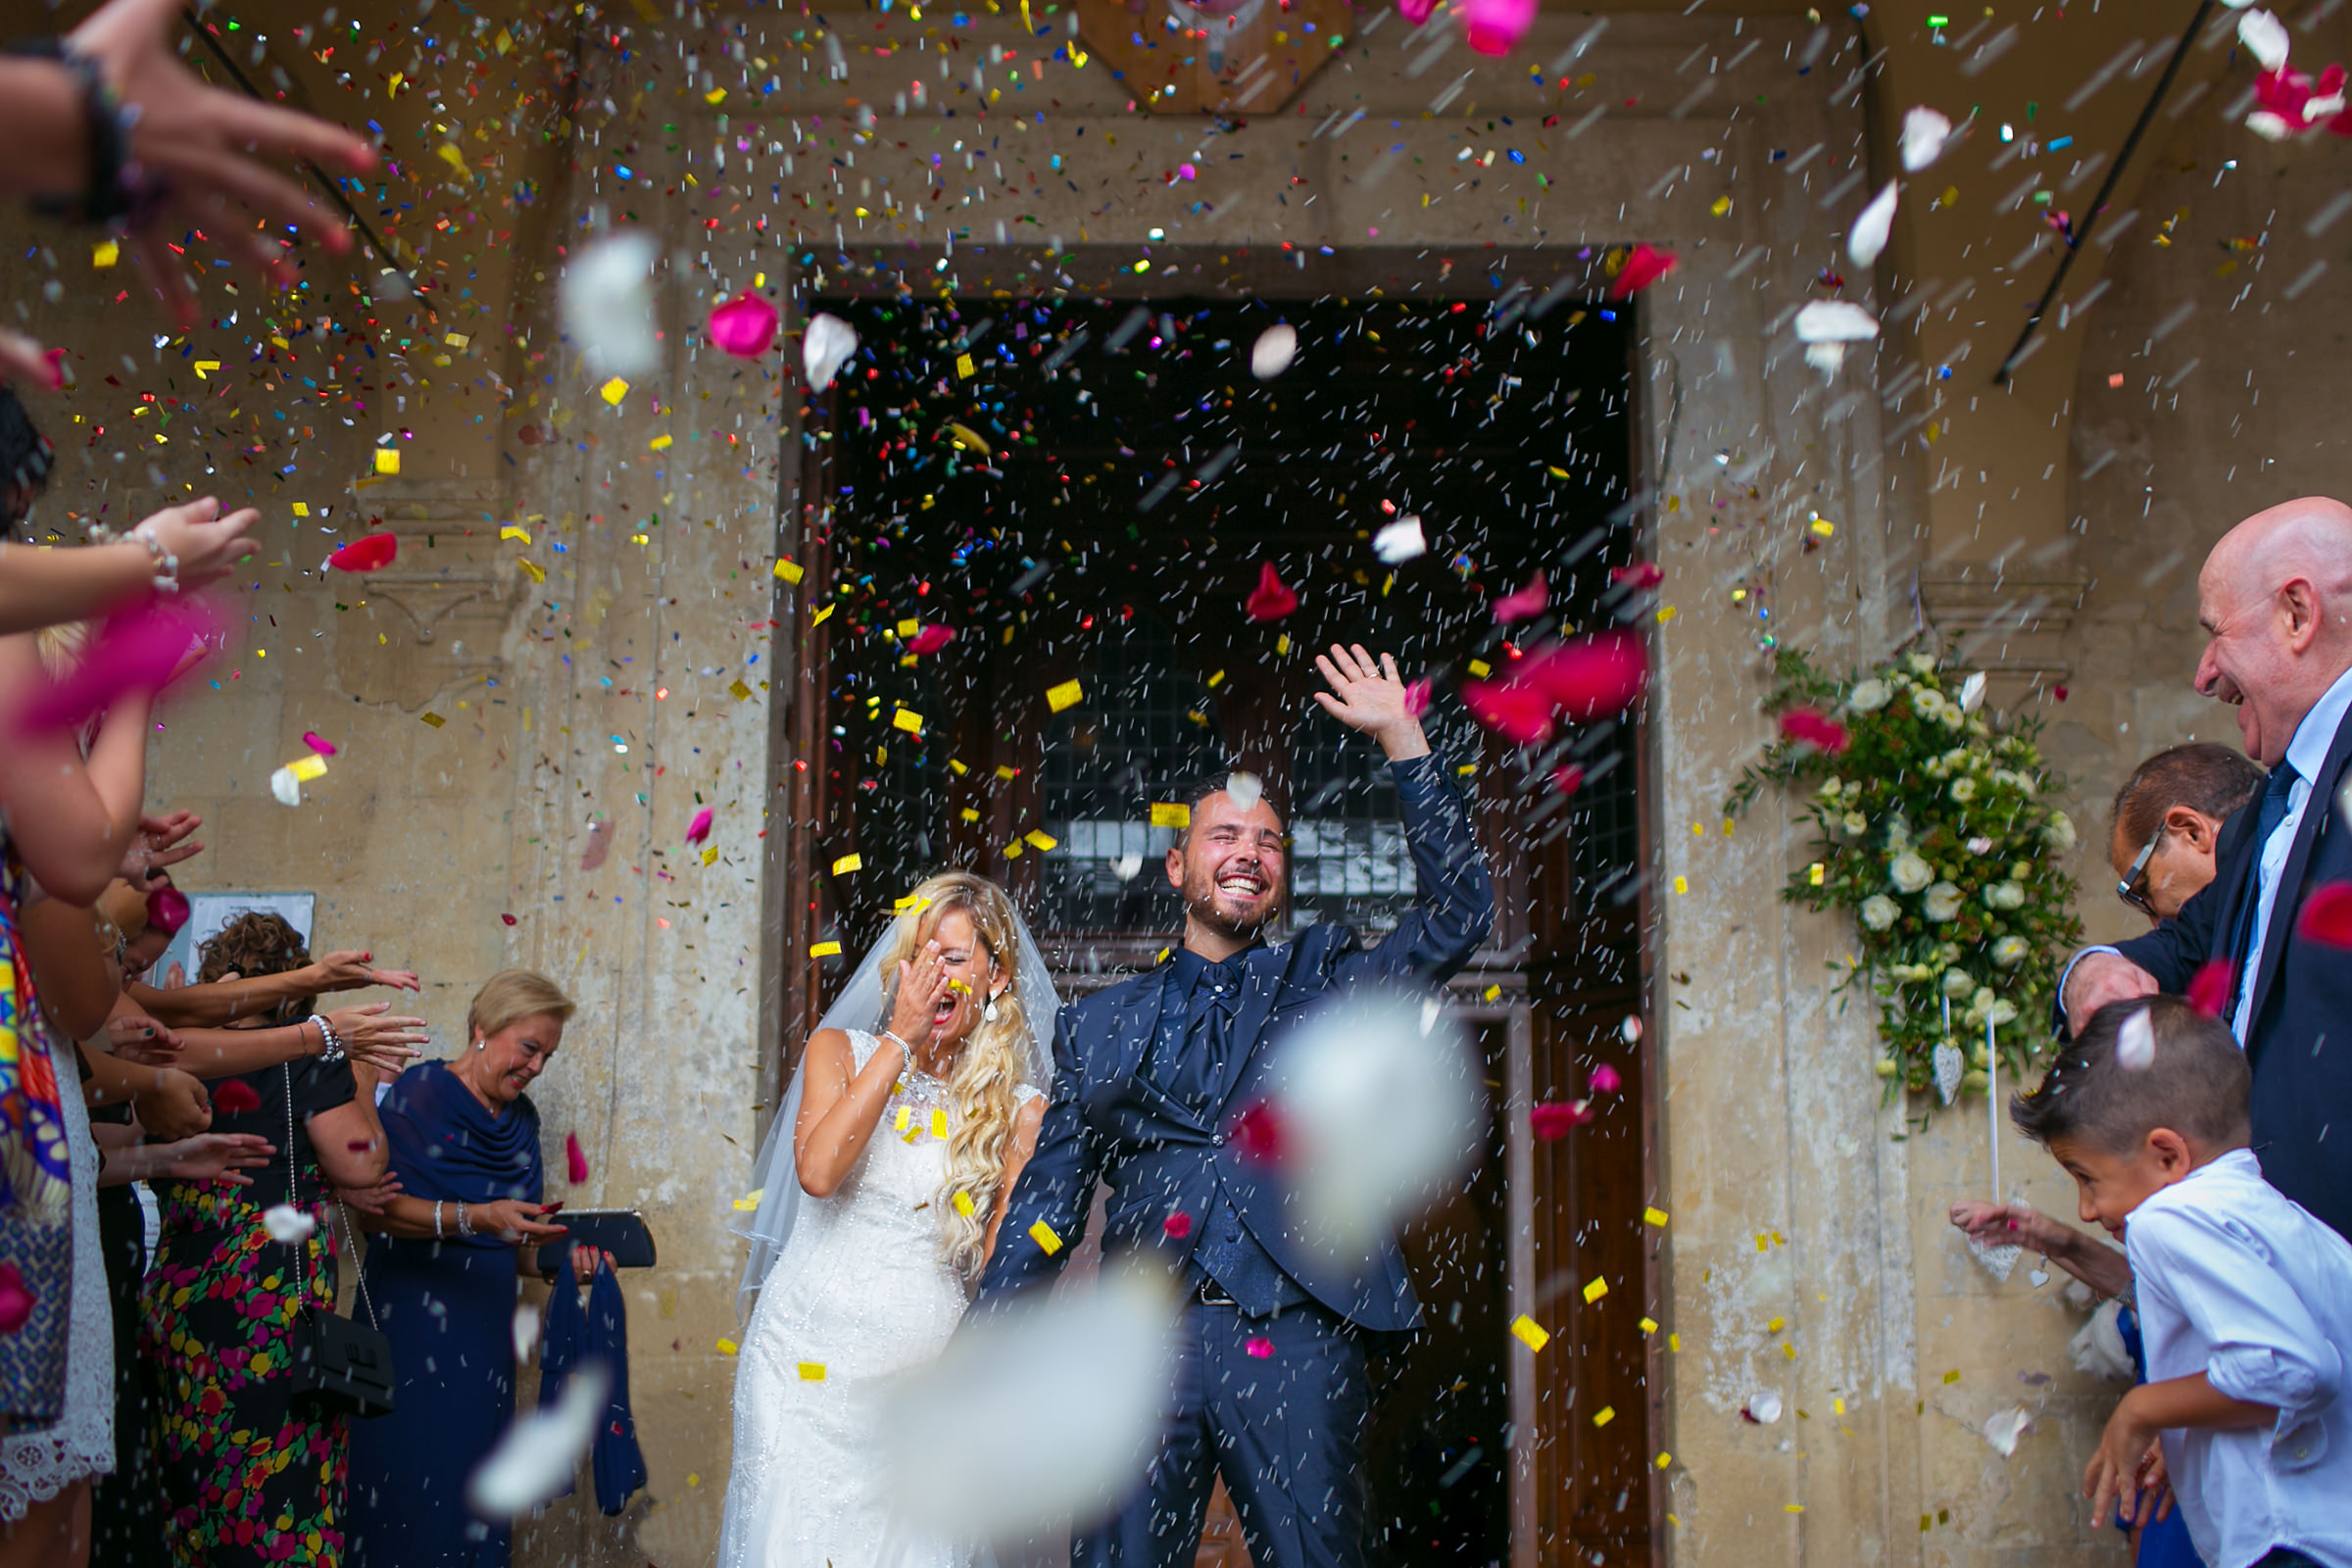 Jubilant couple exit into confetti shower - photo by D2 Photography